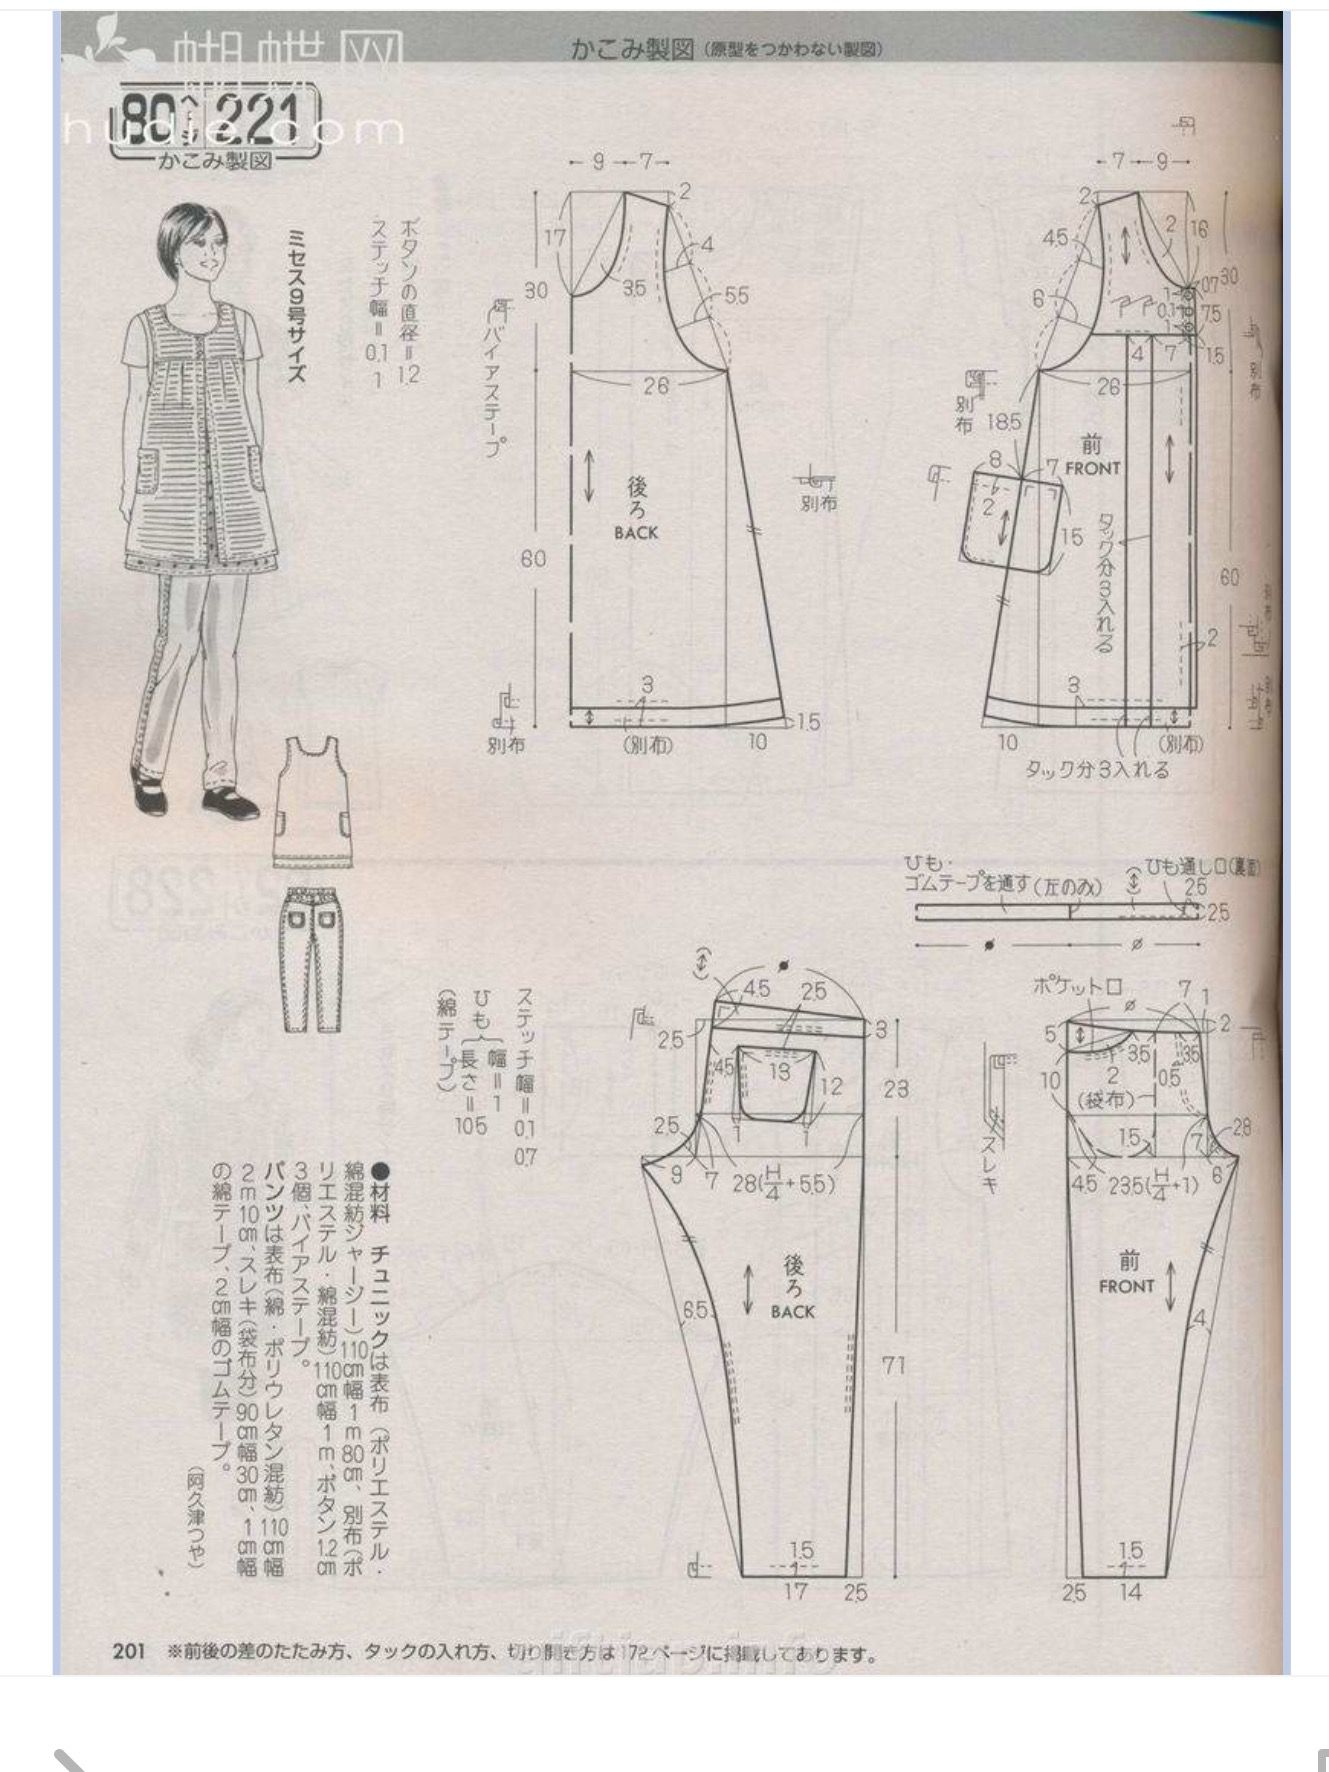 Pin by frances aguirre on pattern making pinterest ladies more ladies boutiquebook and magazinejapanese patternsblouse patternssewing jeuxipadfo Image collections